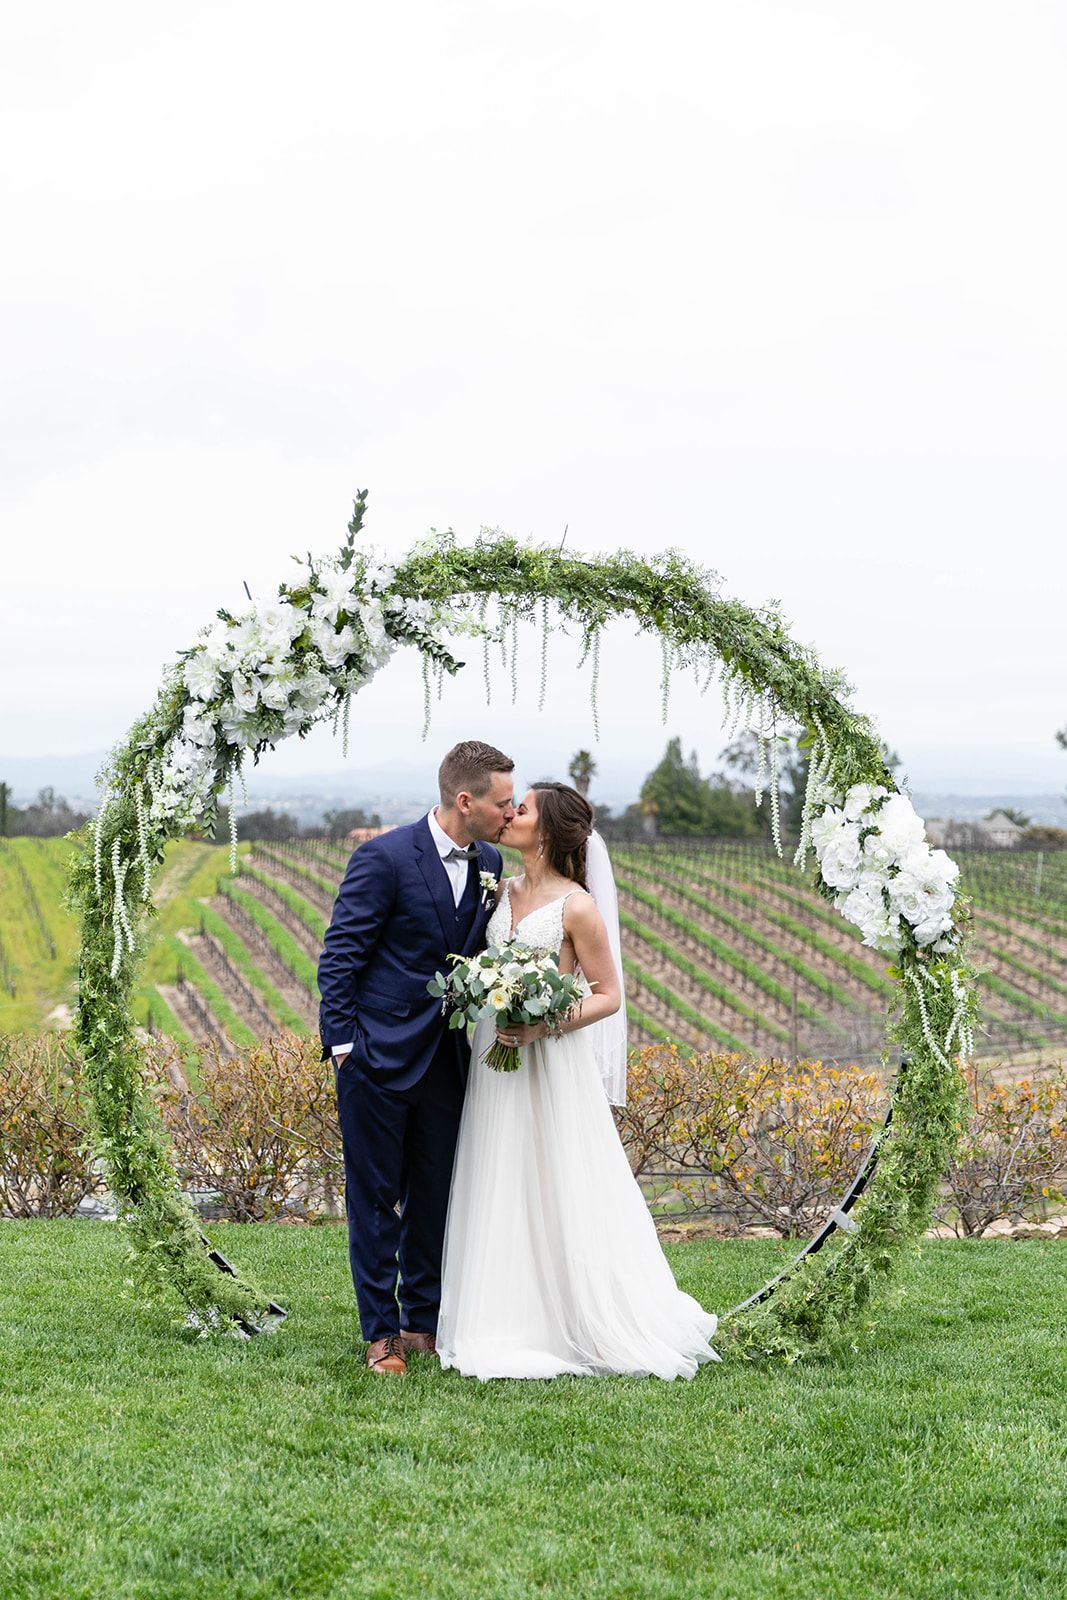 Floral Arch Winery Wedding California Wedding Venues Wedding Photography And Videography Wedding Photography